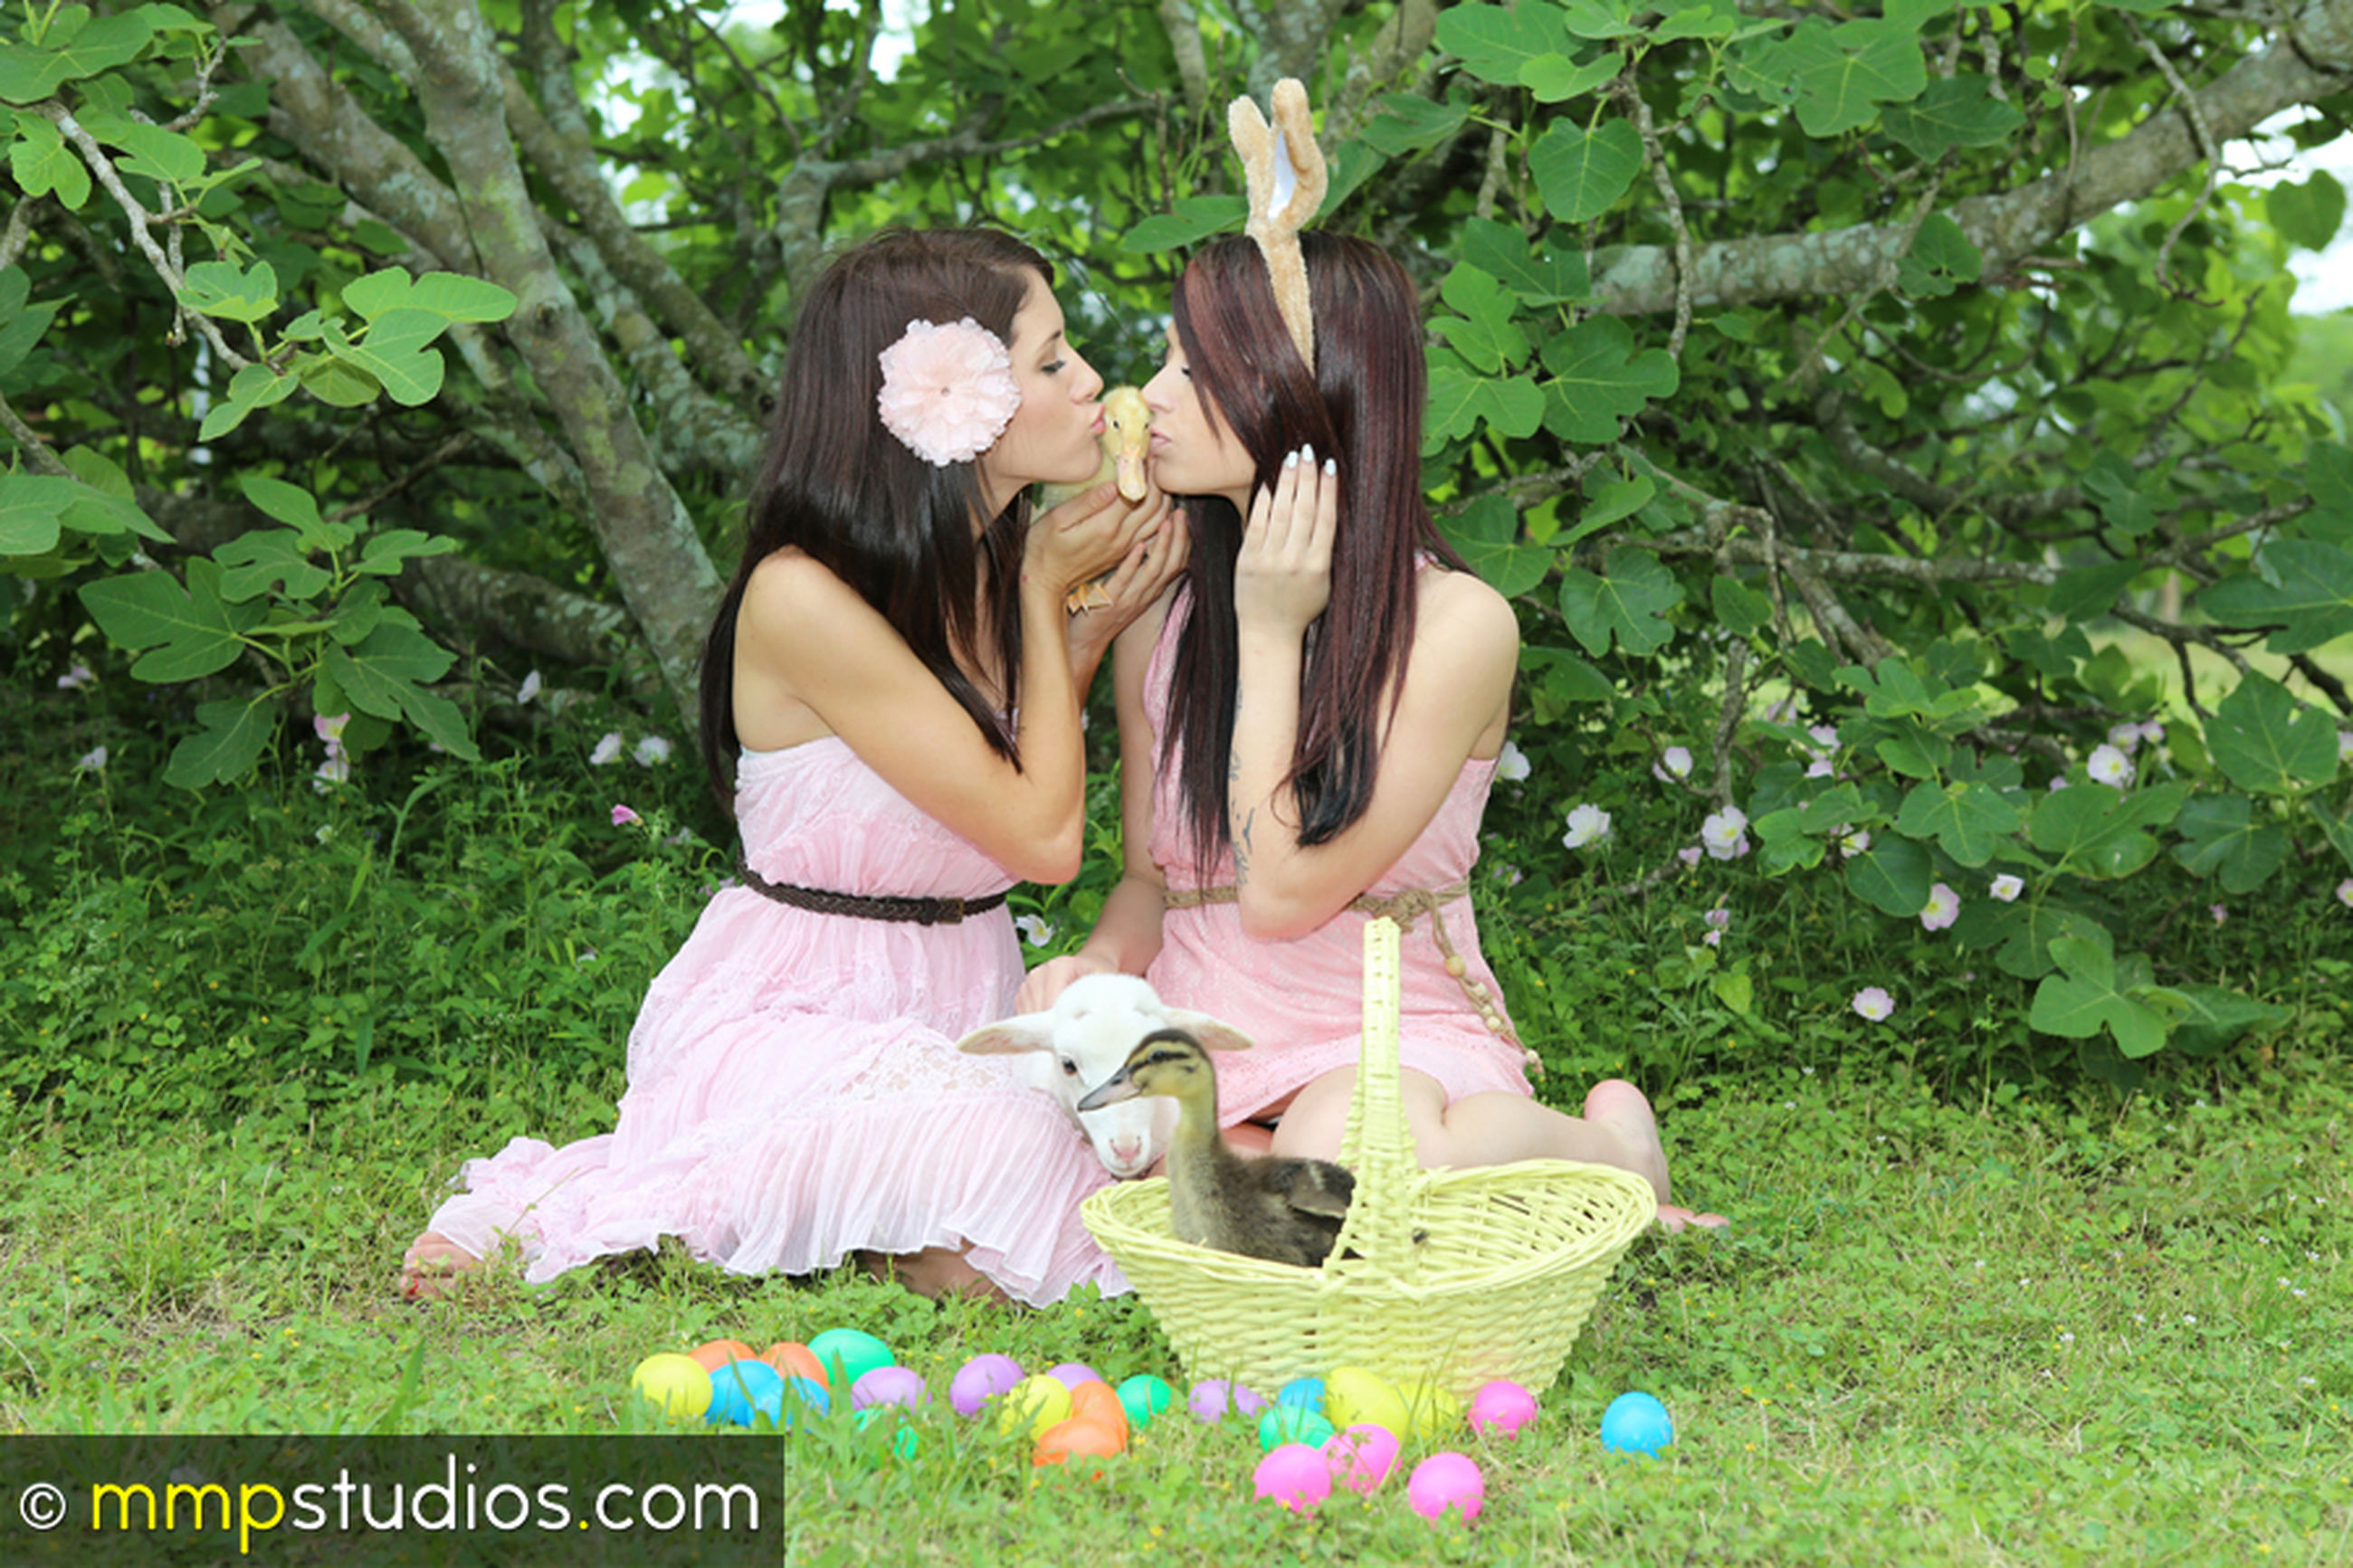 plant, flower, grass, women, flowering plant, togetherness, two people, nature, real people, young women, celebration, day, green color, love, young adult, females, emotion, full length, leisure activity, basket, couple - relationship, positive emotion, outdoors